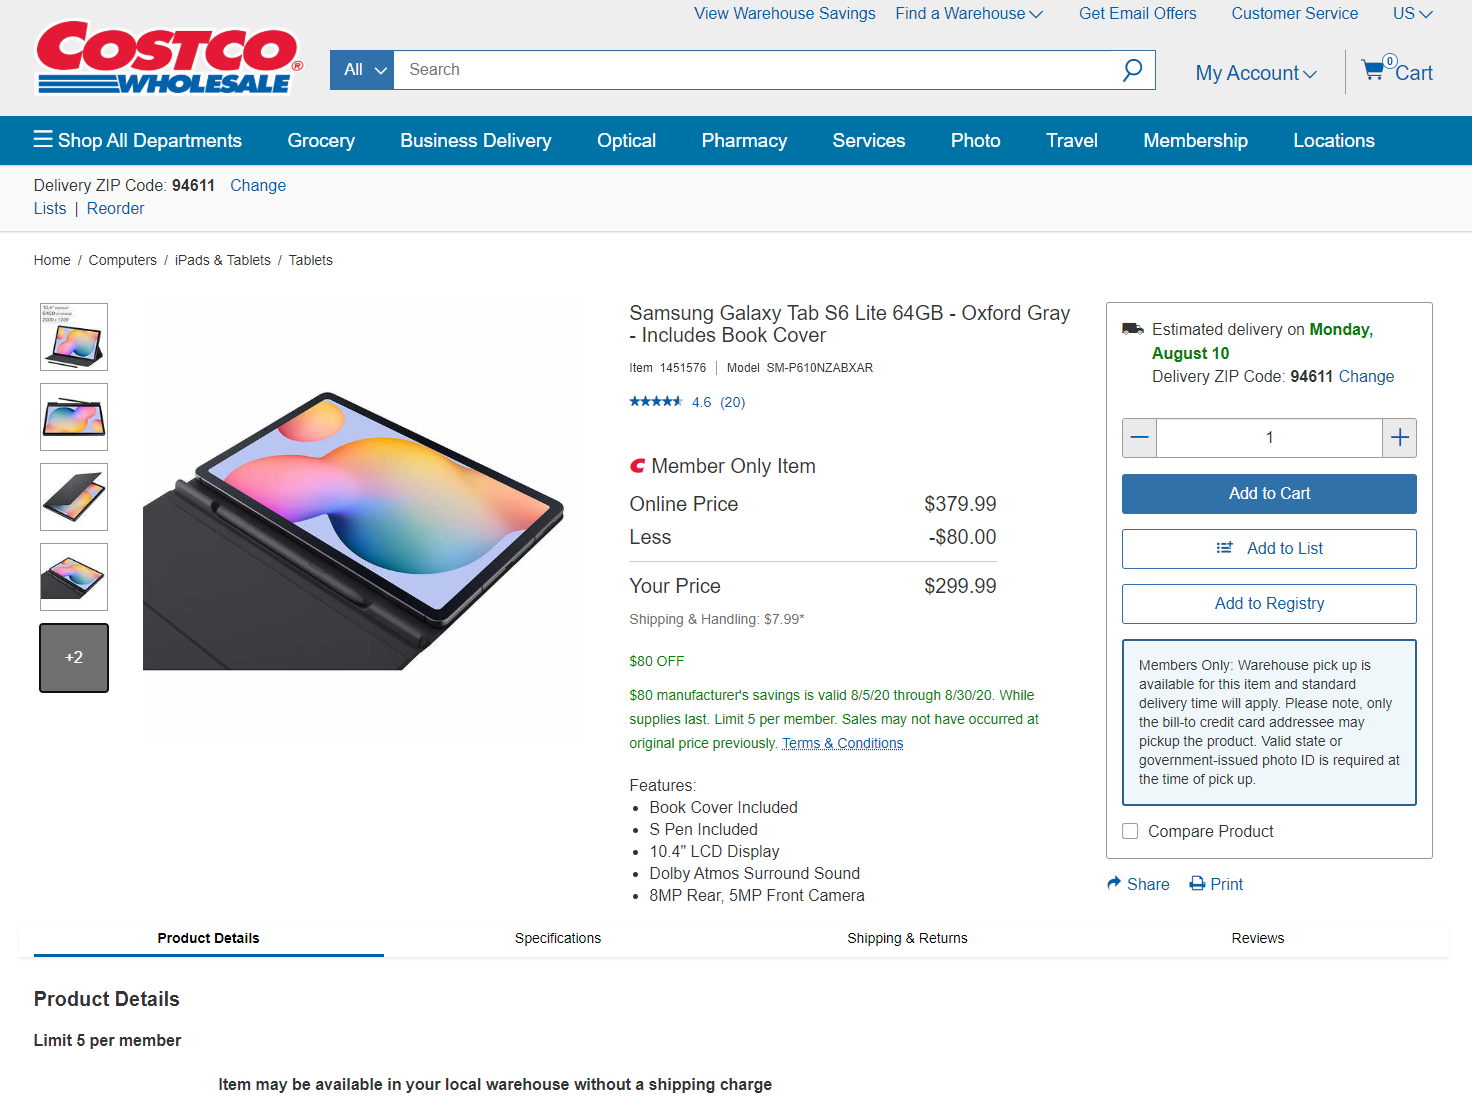 Samsung Galaxy Tab S6 Lite with Book Cover is $300 ($80 off) at Costco